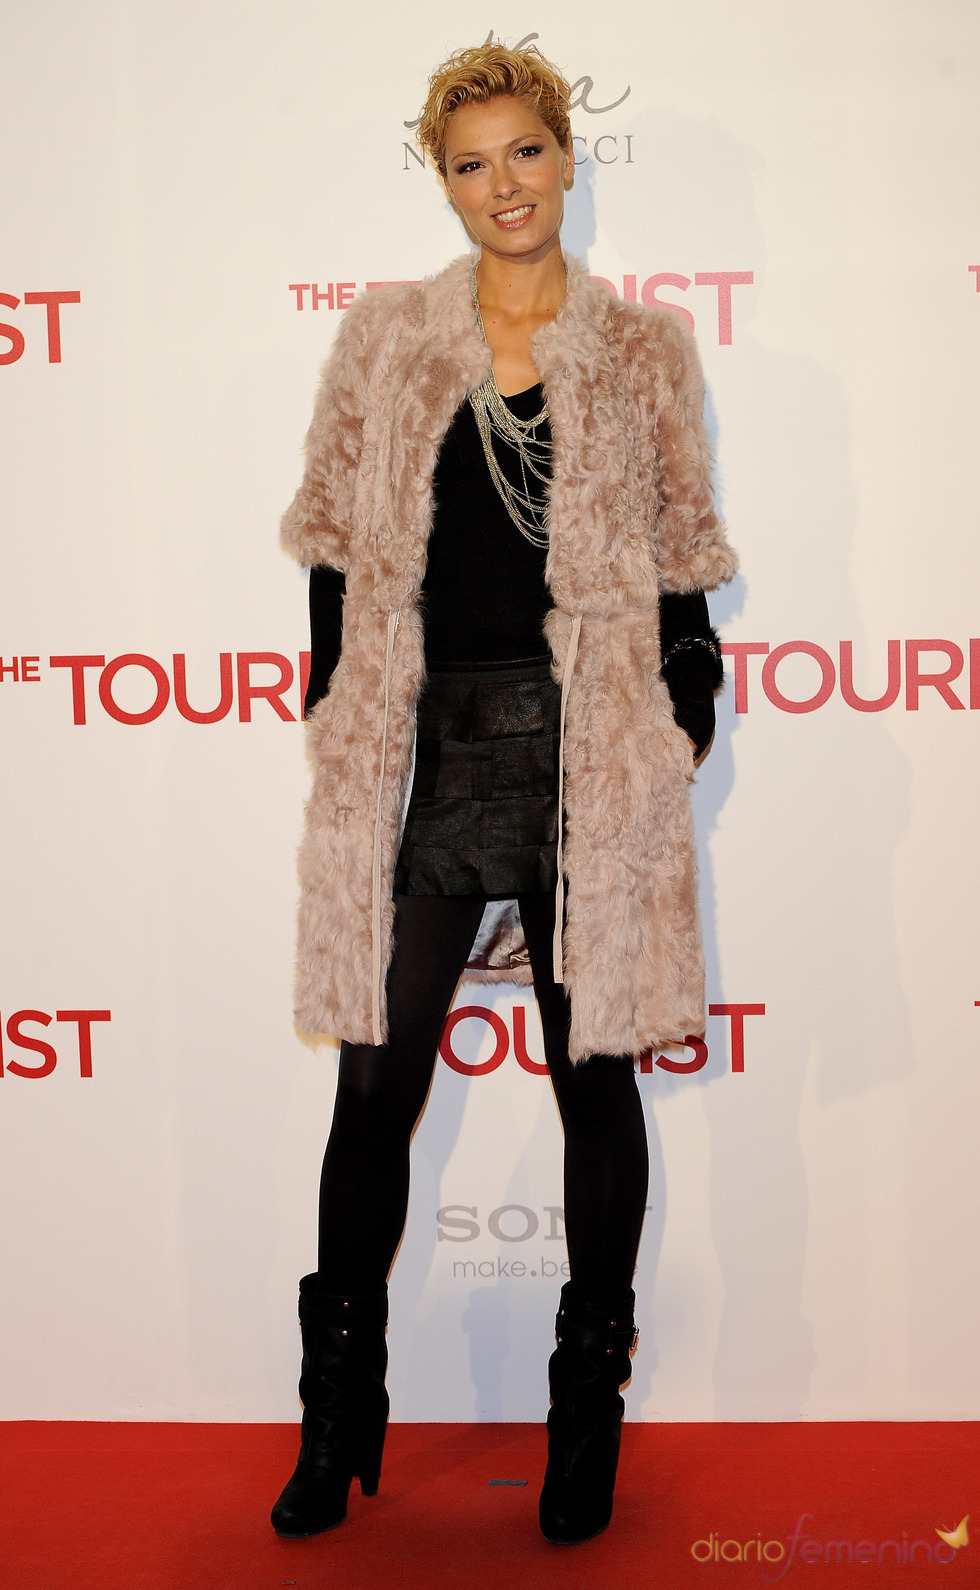 Cristina Urgel en la premiere en Madrid de 'The Tourist'